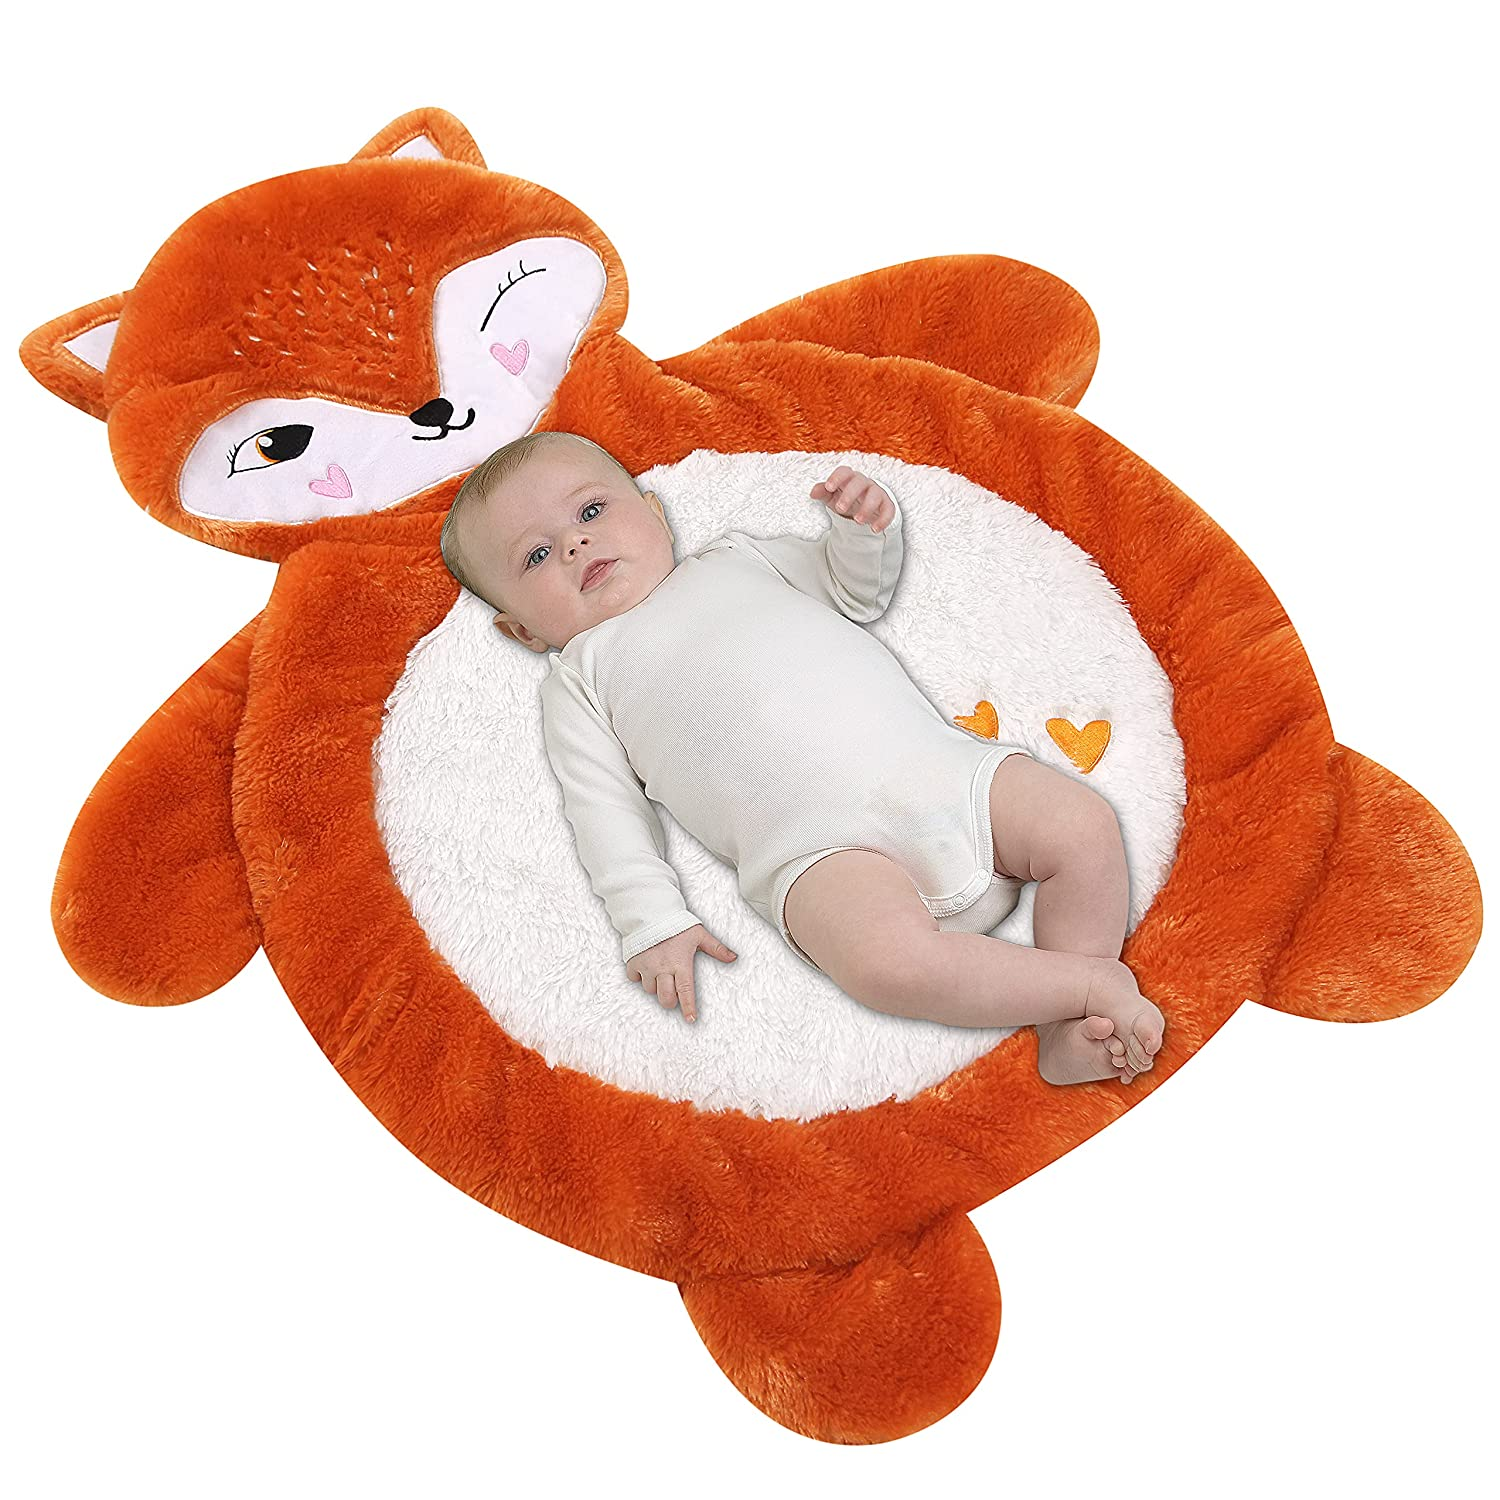 Baby Floor Mats for Infants, Fox Tummy Time Mat, Plush Baby Play Mat, Antiskid Stuffed Animal Baby Mat, Soft and Cozy Padded Newborn Playmats for Travel, Size 33x27.5in, Orange, White Fox